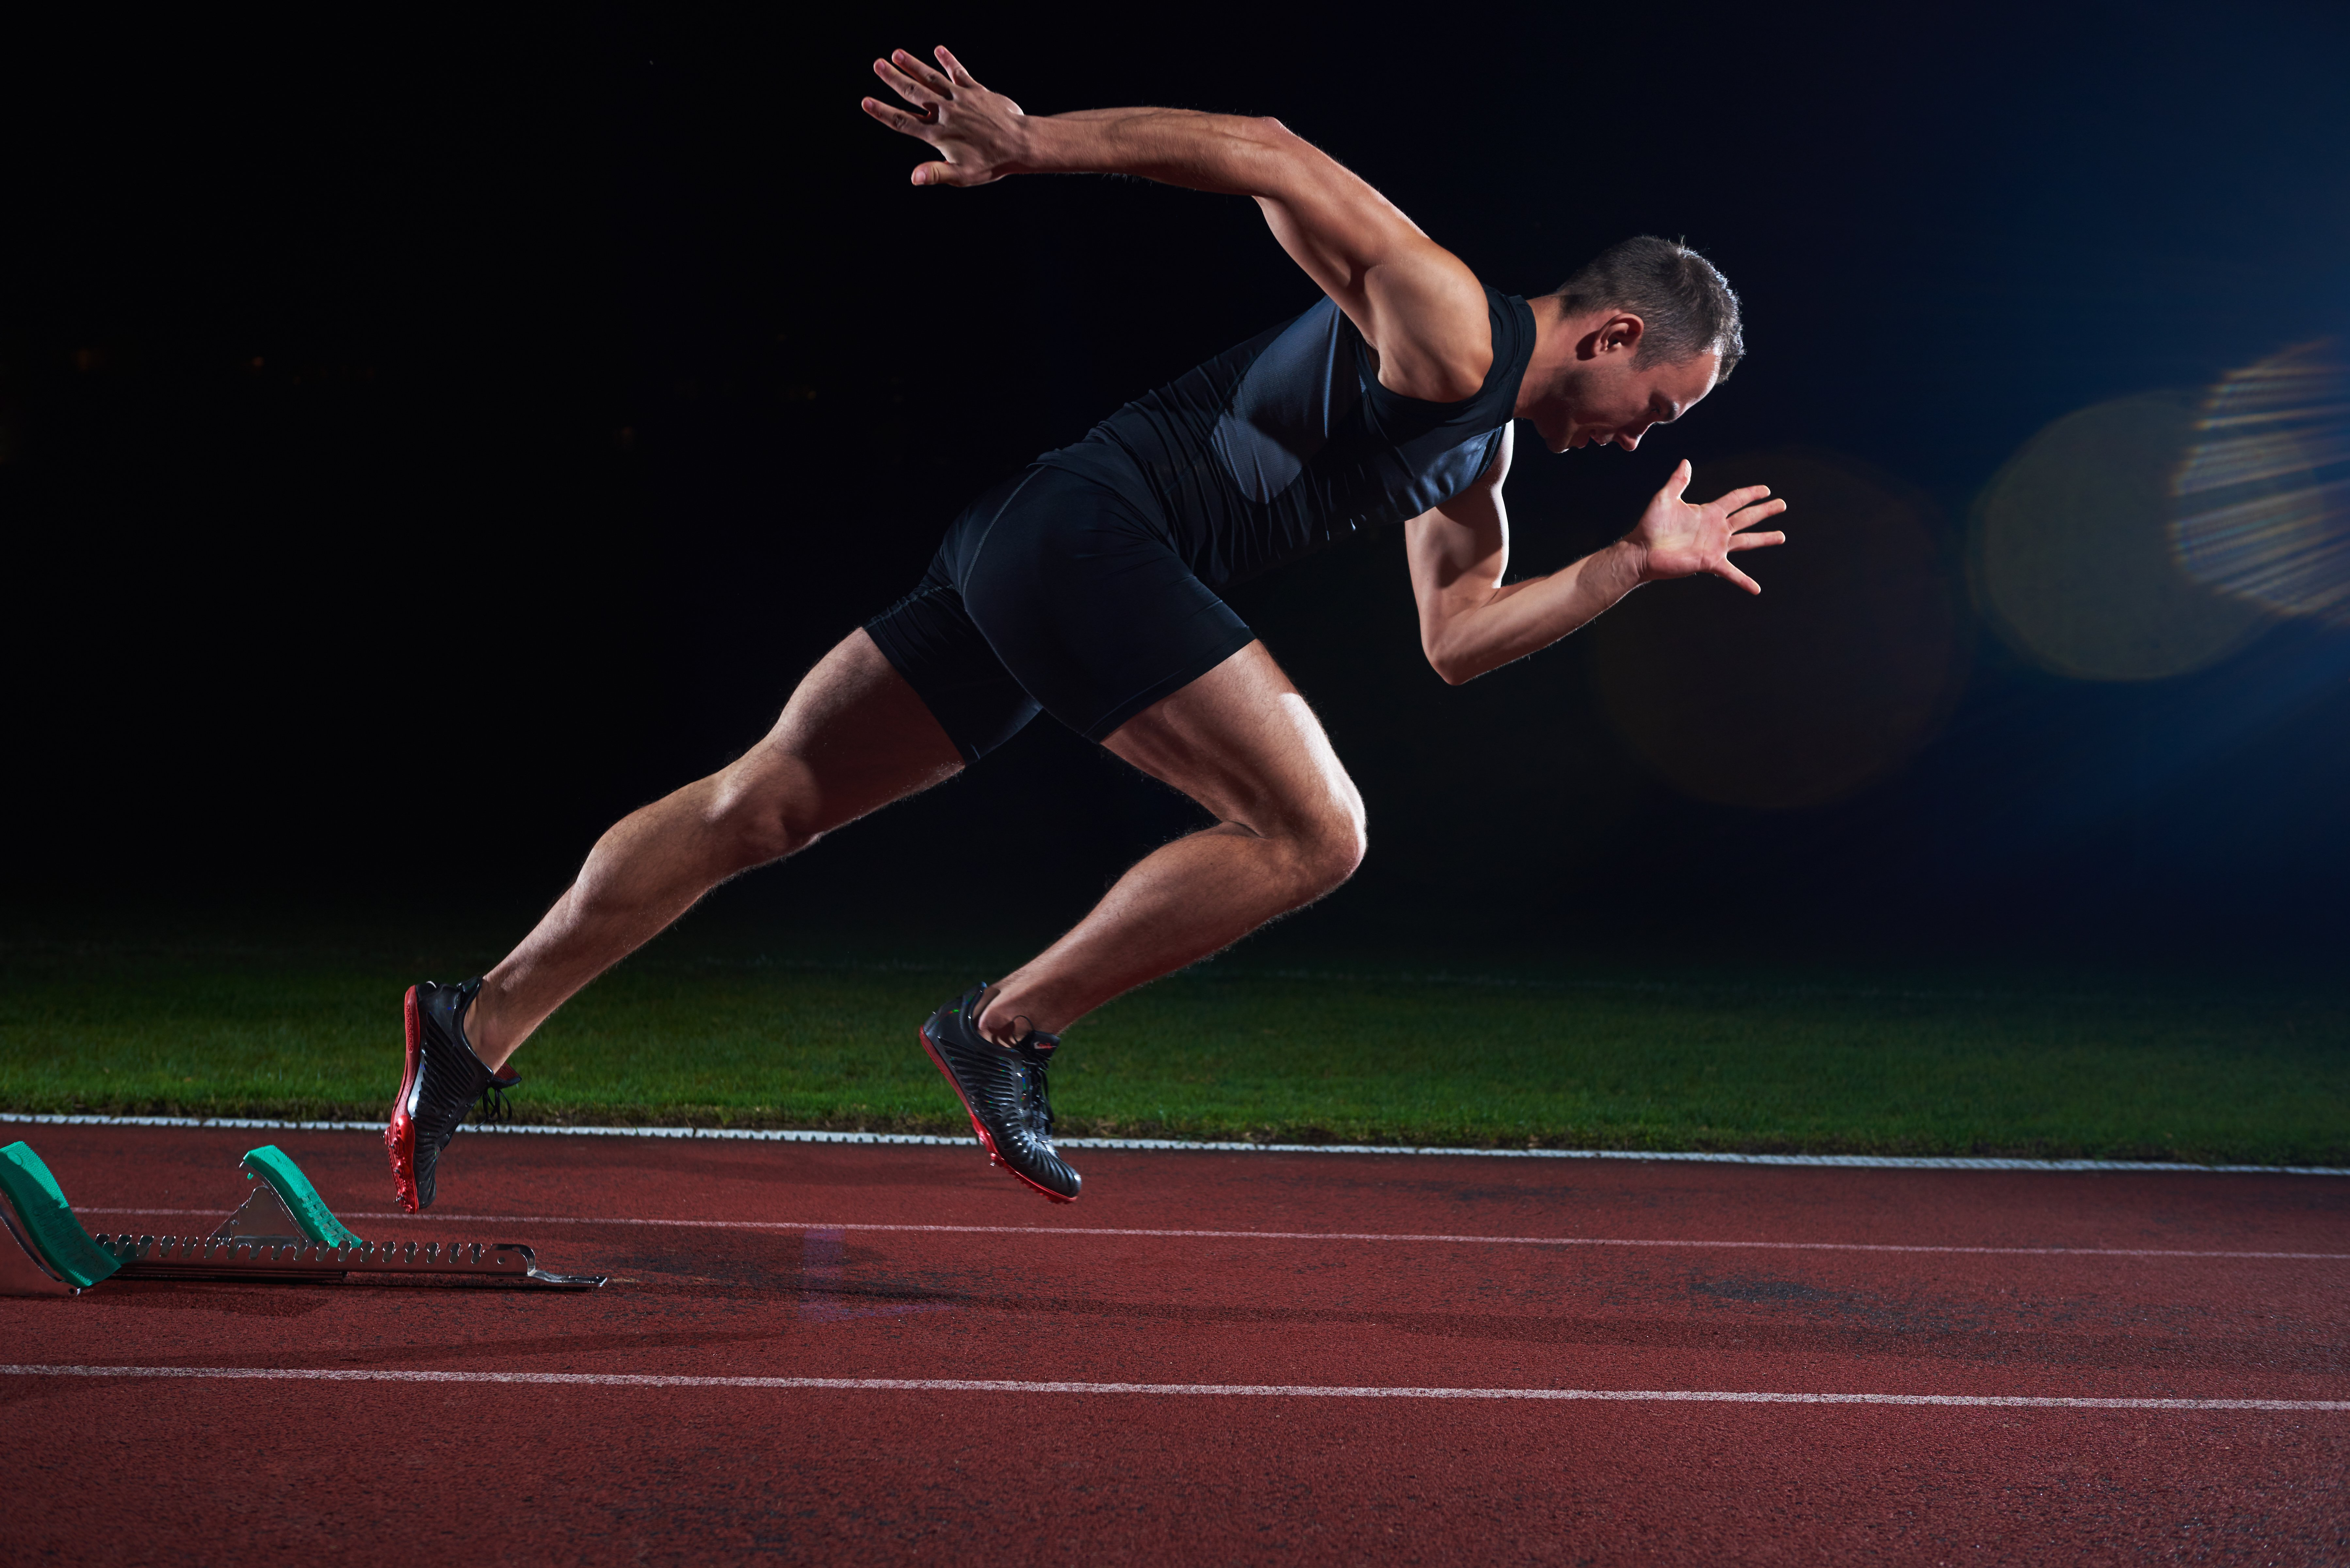 Sports Related Foot & Ankle Injuries